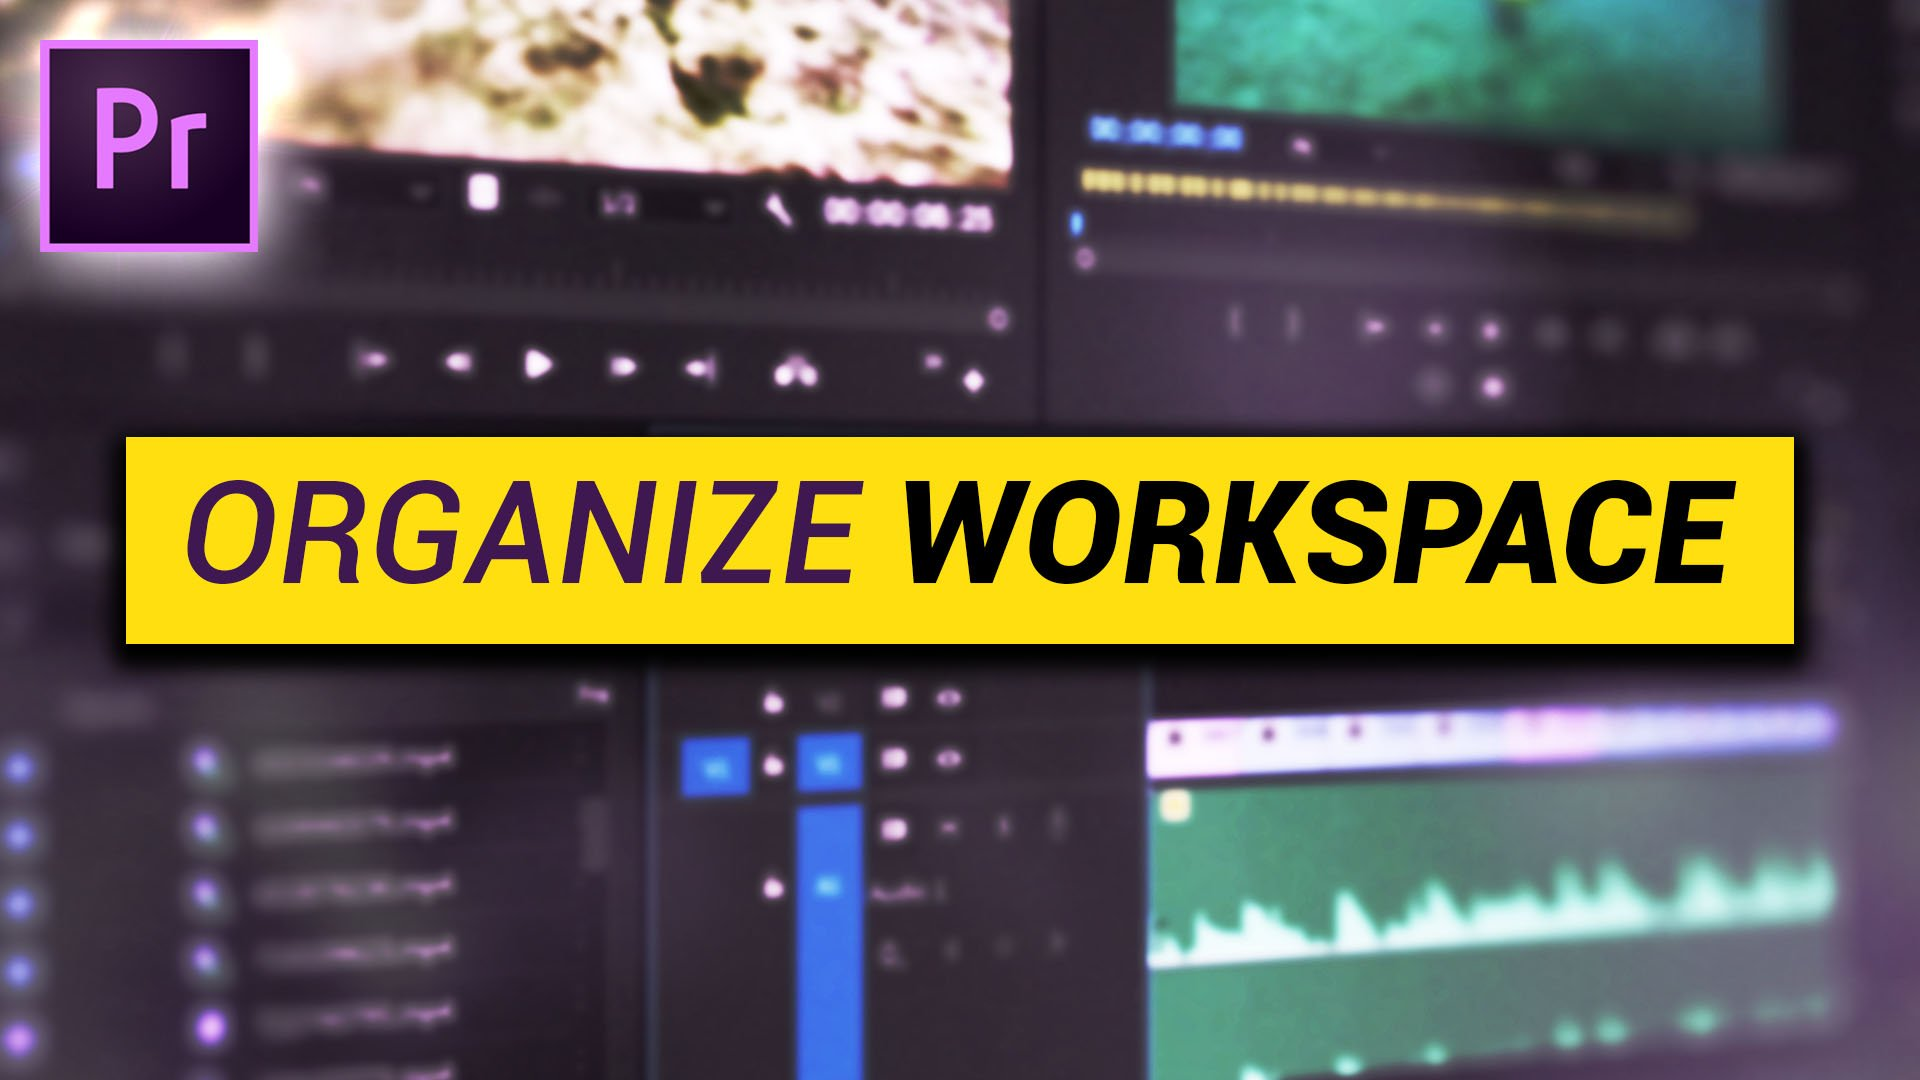 Organize workspace